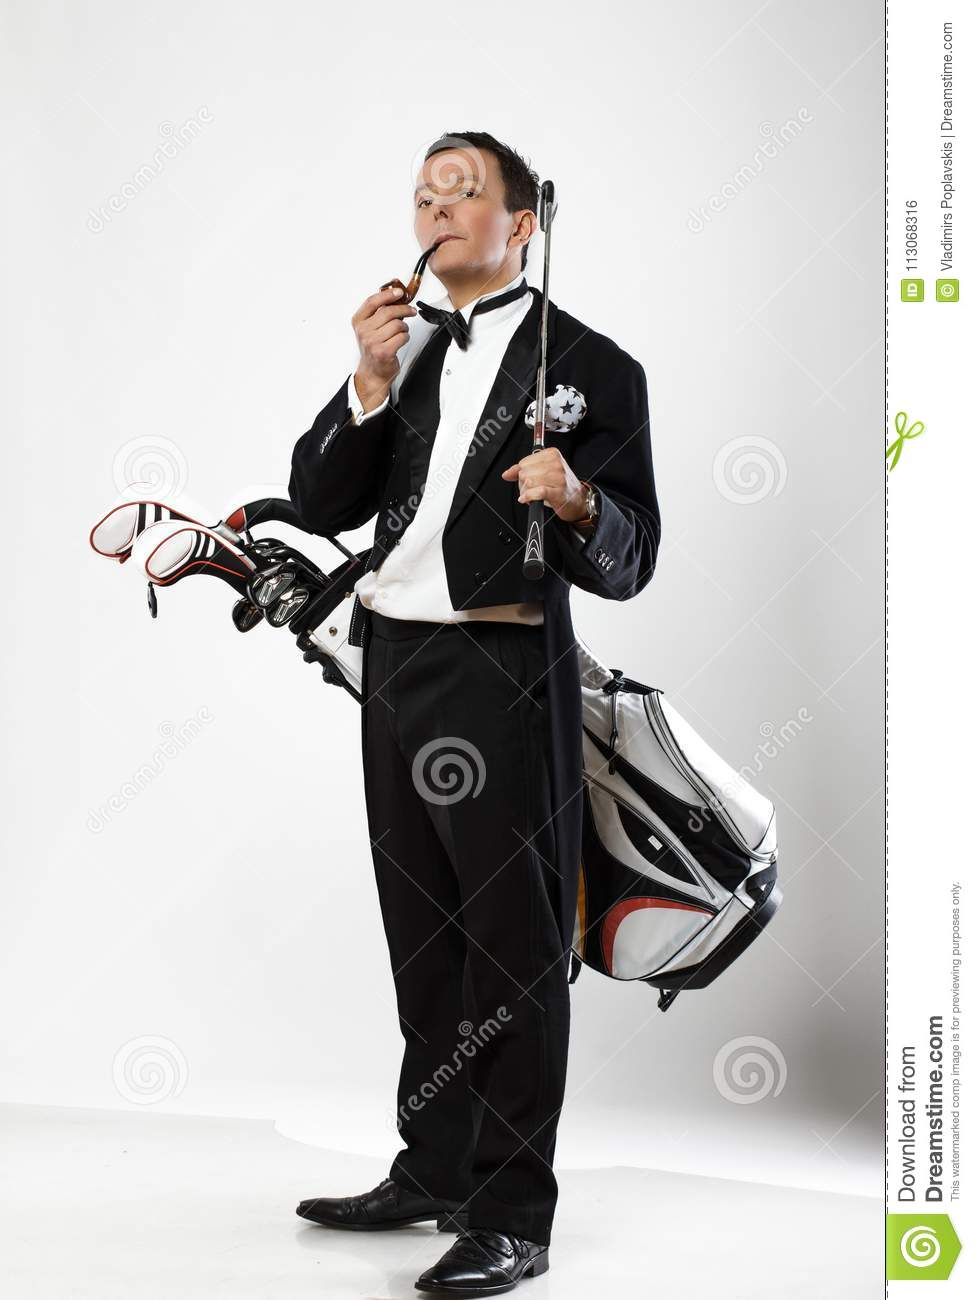 Happy Man In Dinner Suit Holds Golf Club. Stock Photo ...